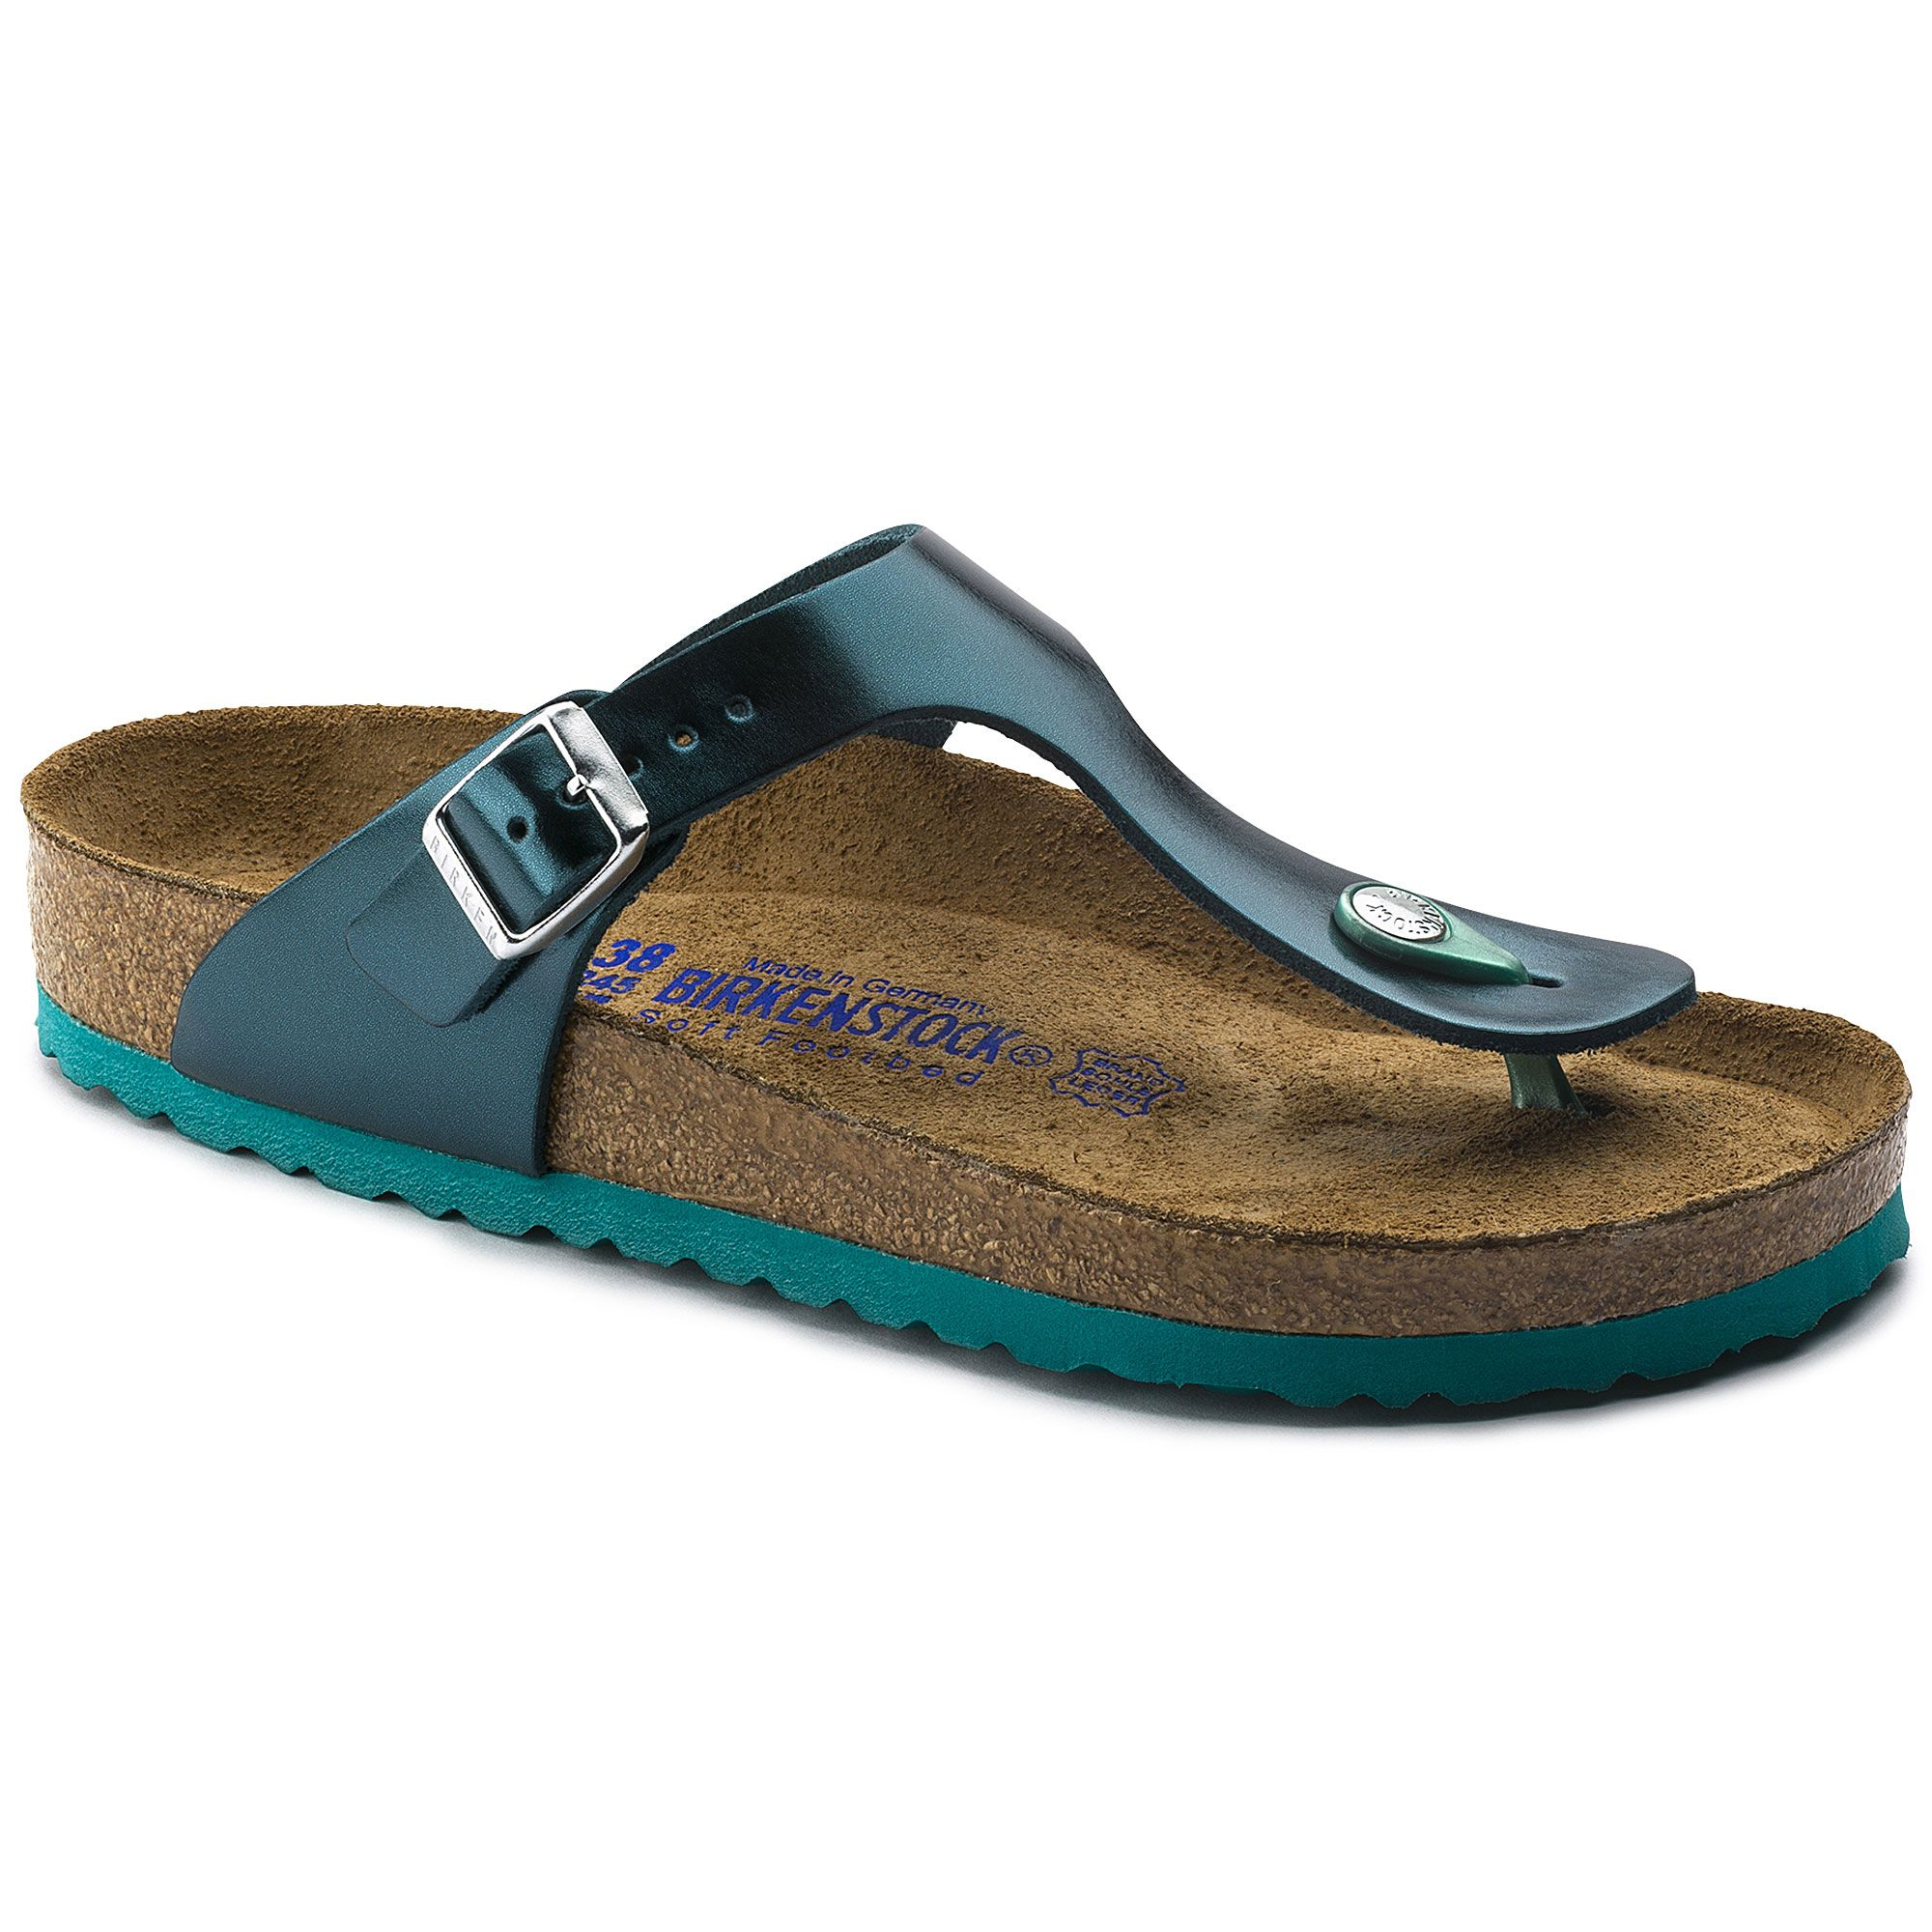 Gizeh Natural Leather | Birkenstock, Natural leather, Leather